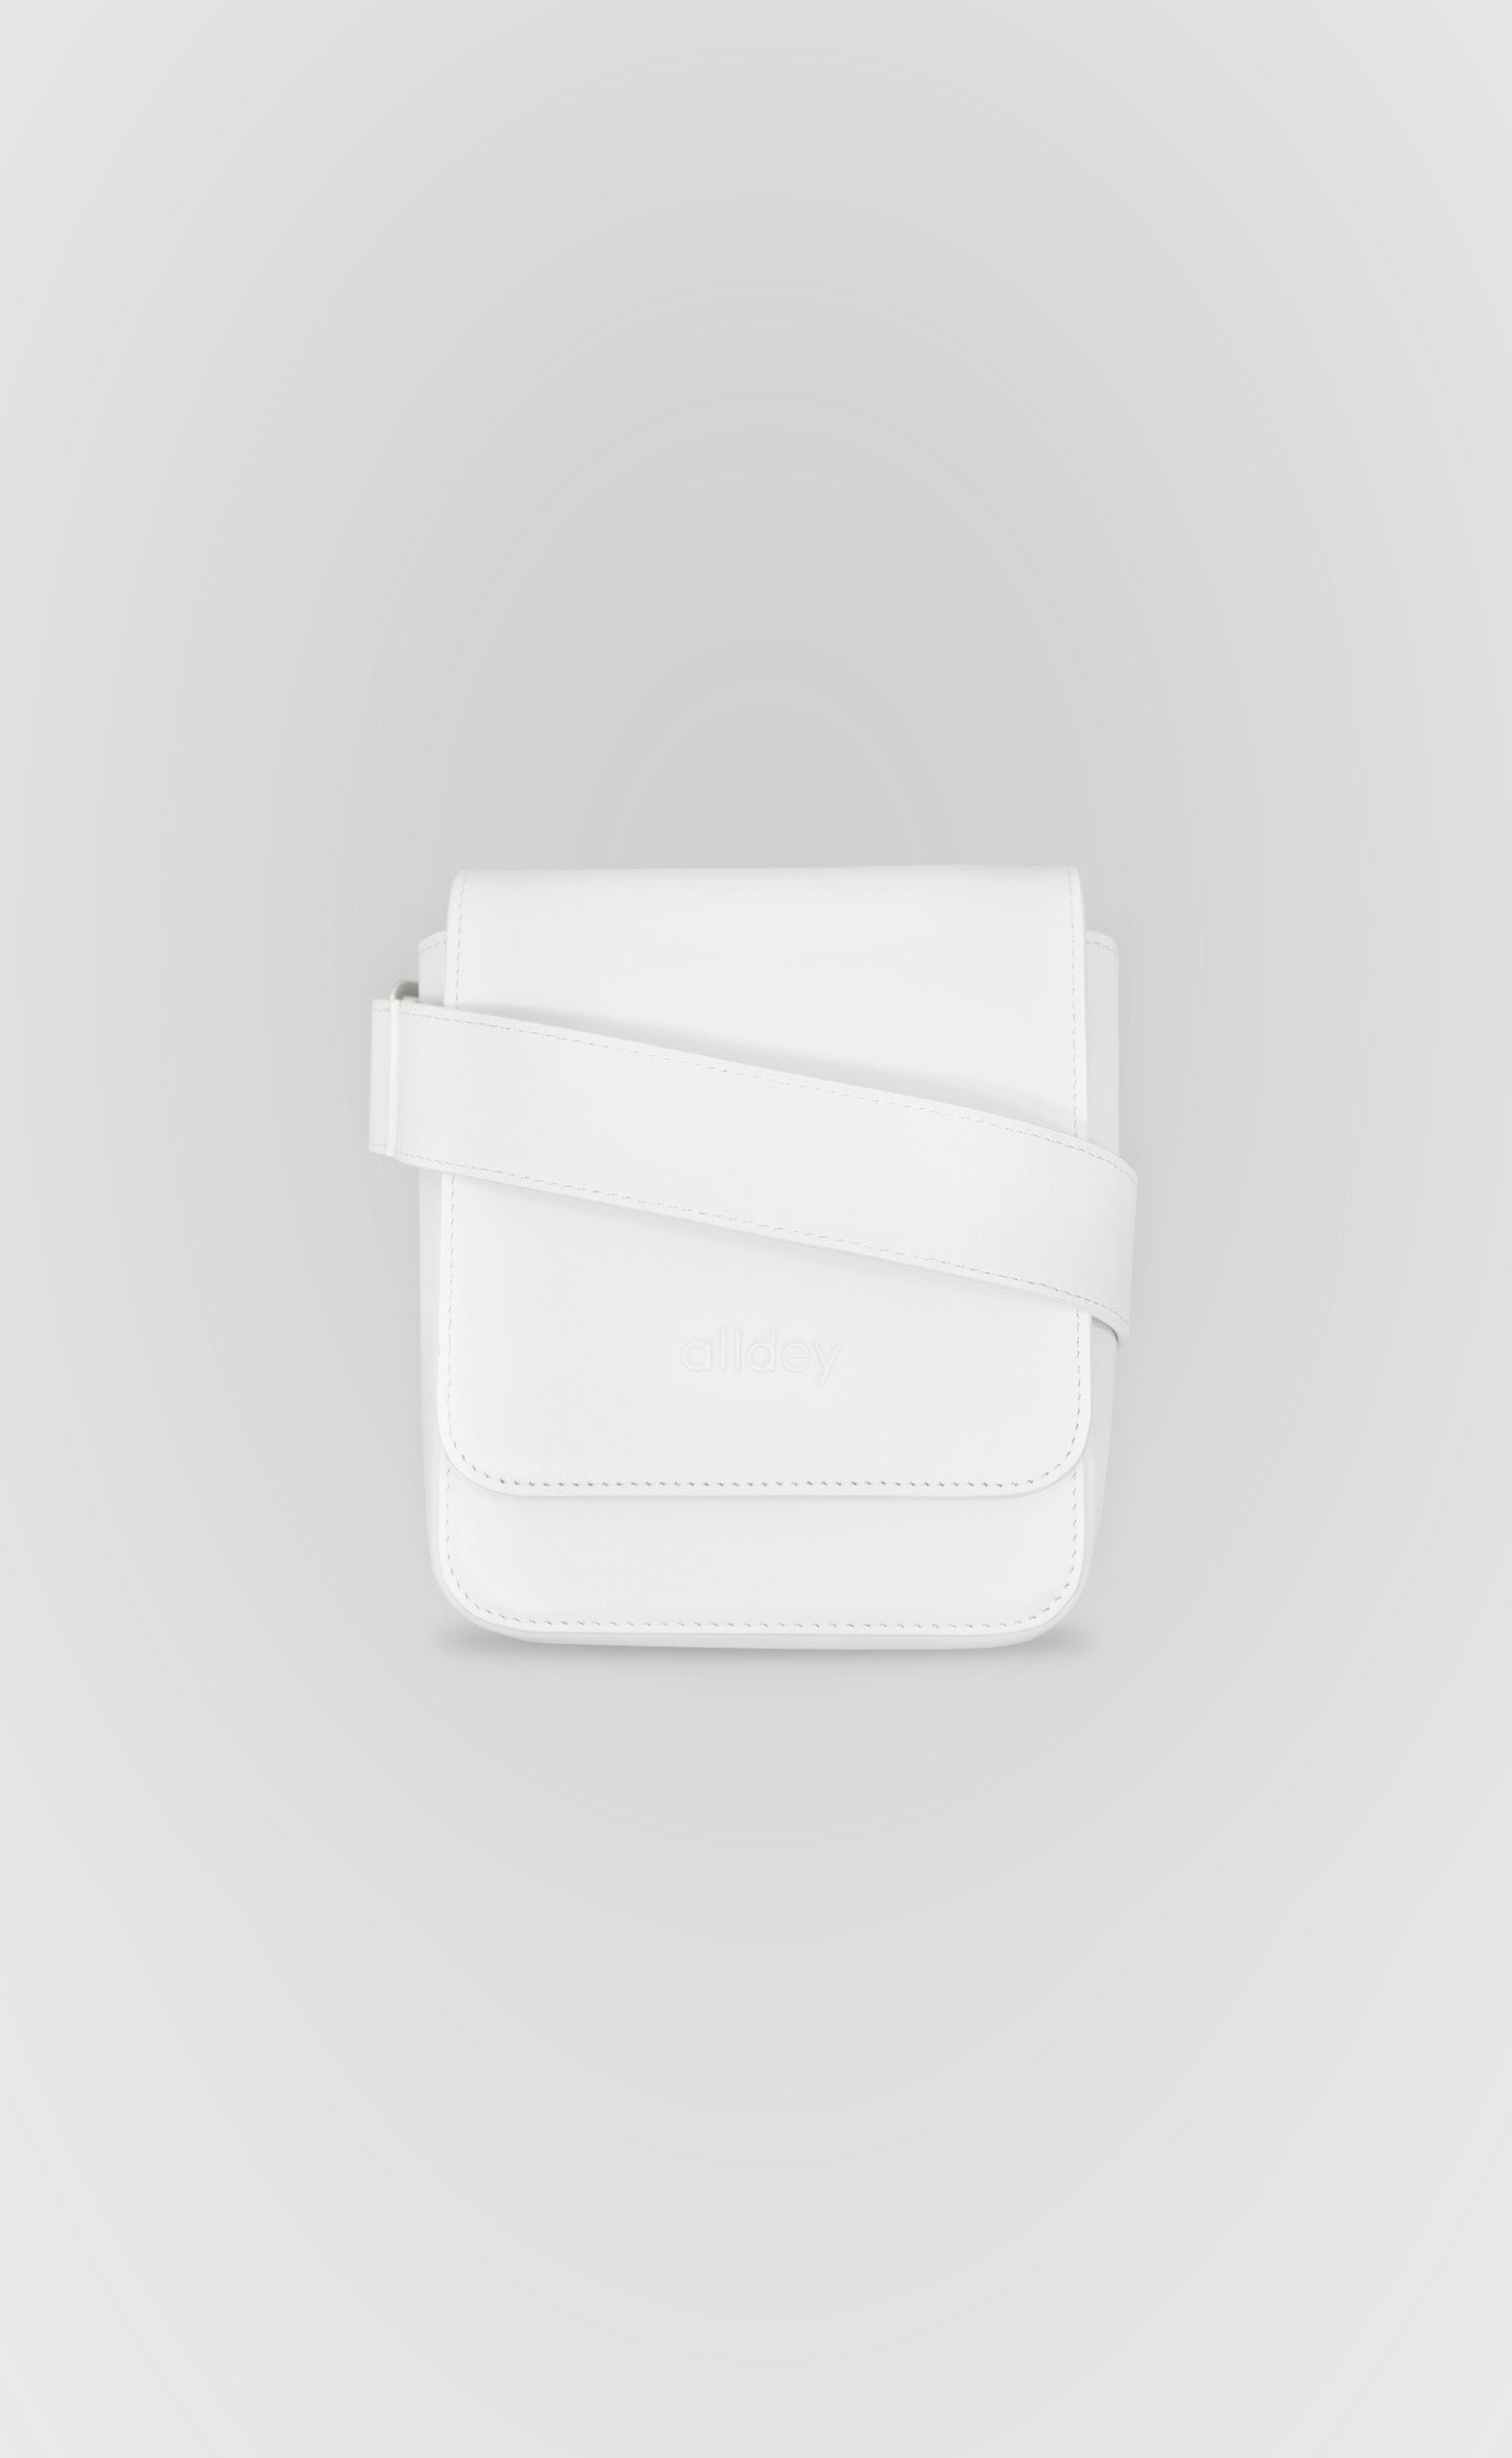 White Top Messenger Bag - Alldey Studios